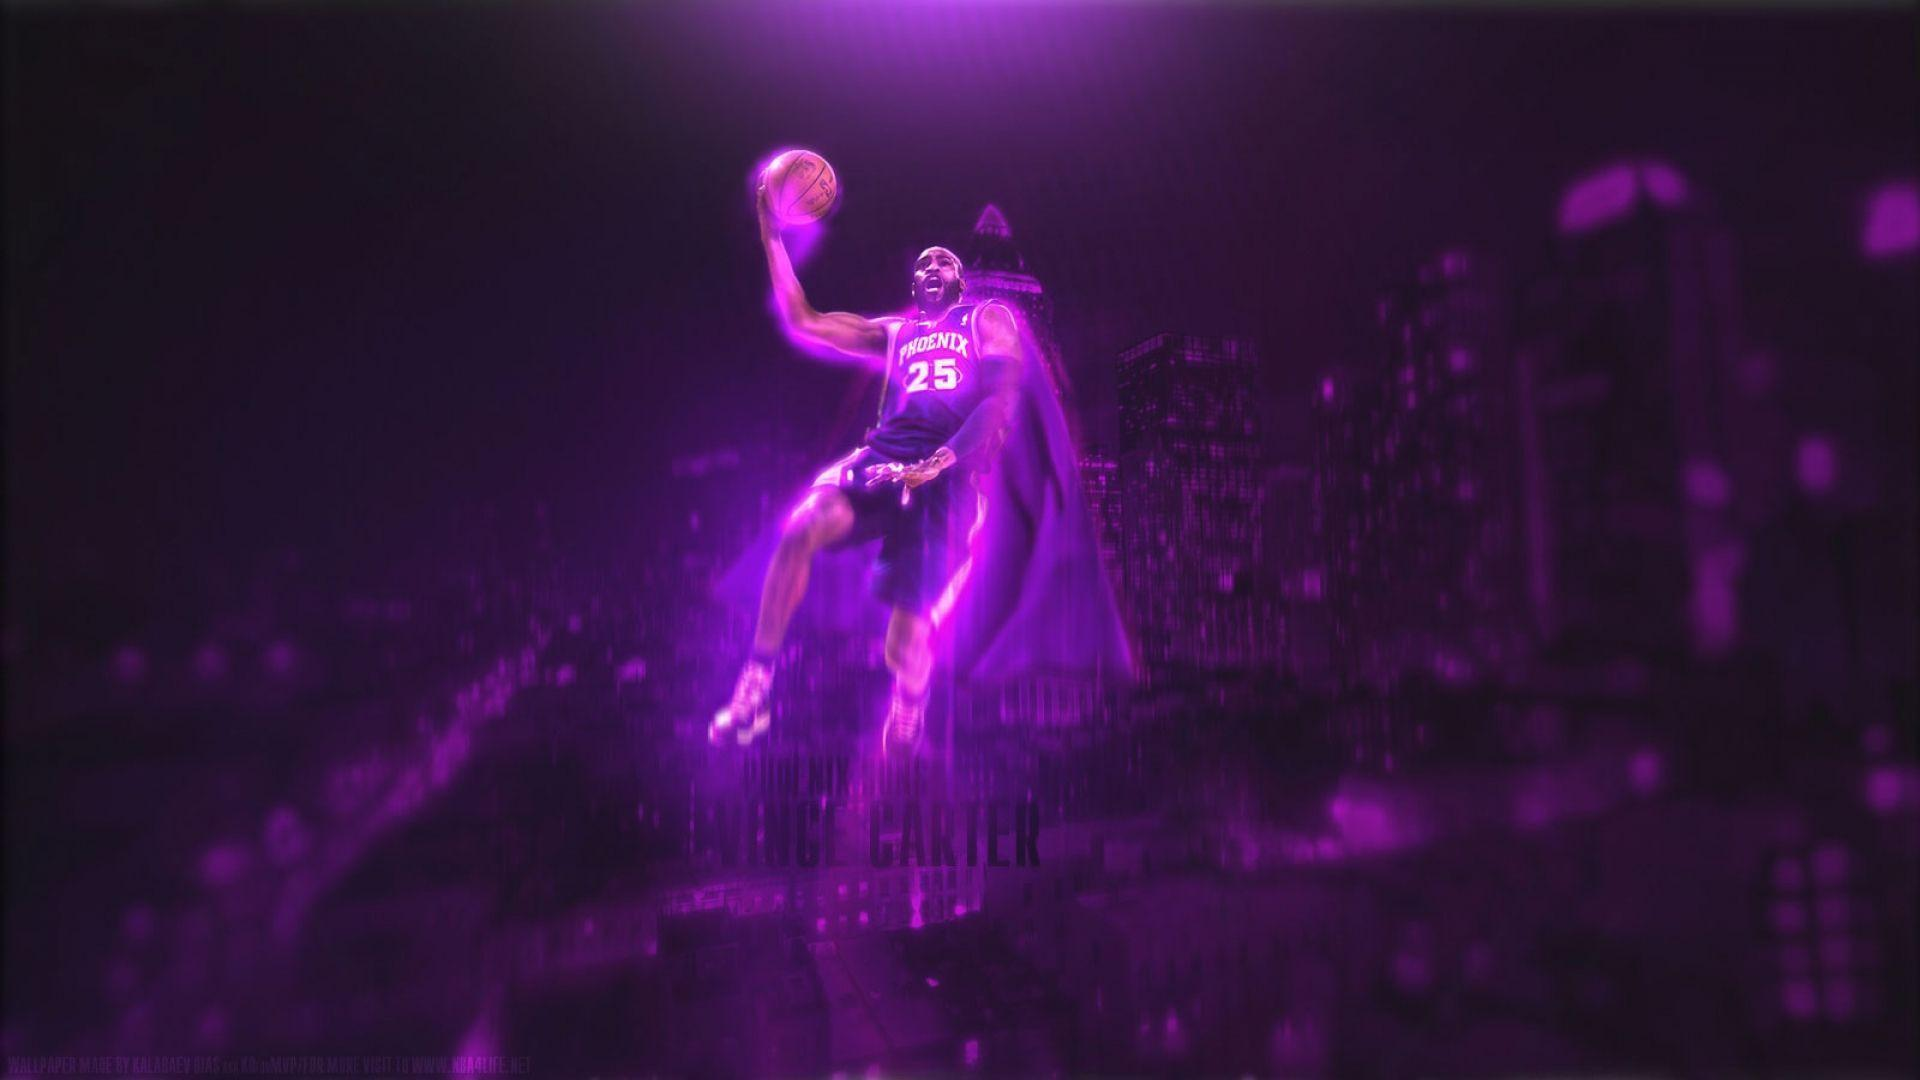 Vince Carter Wallpapers 2